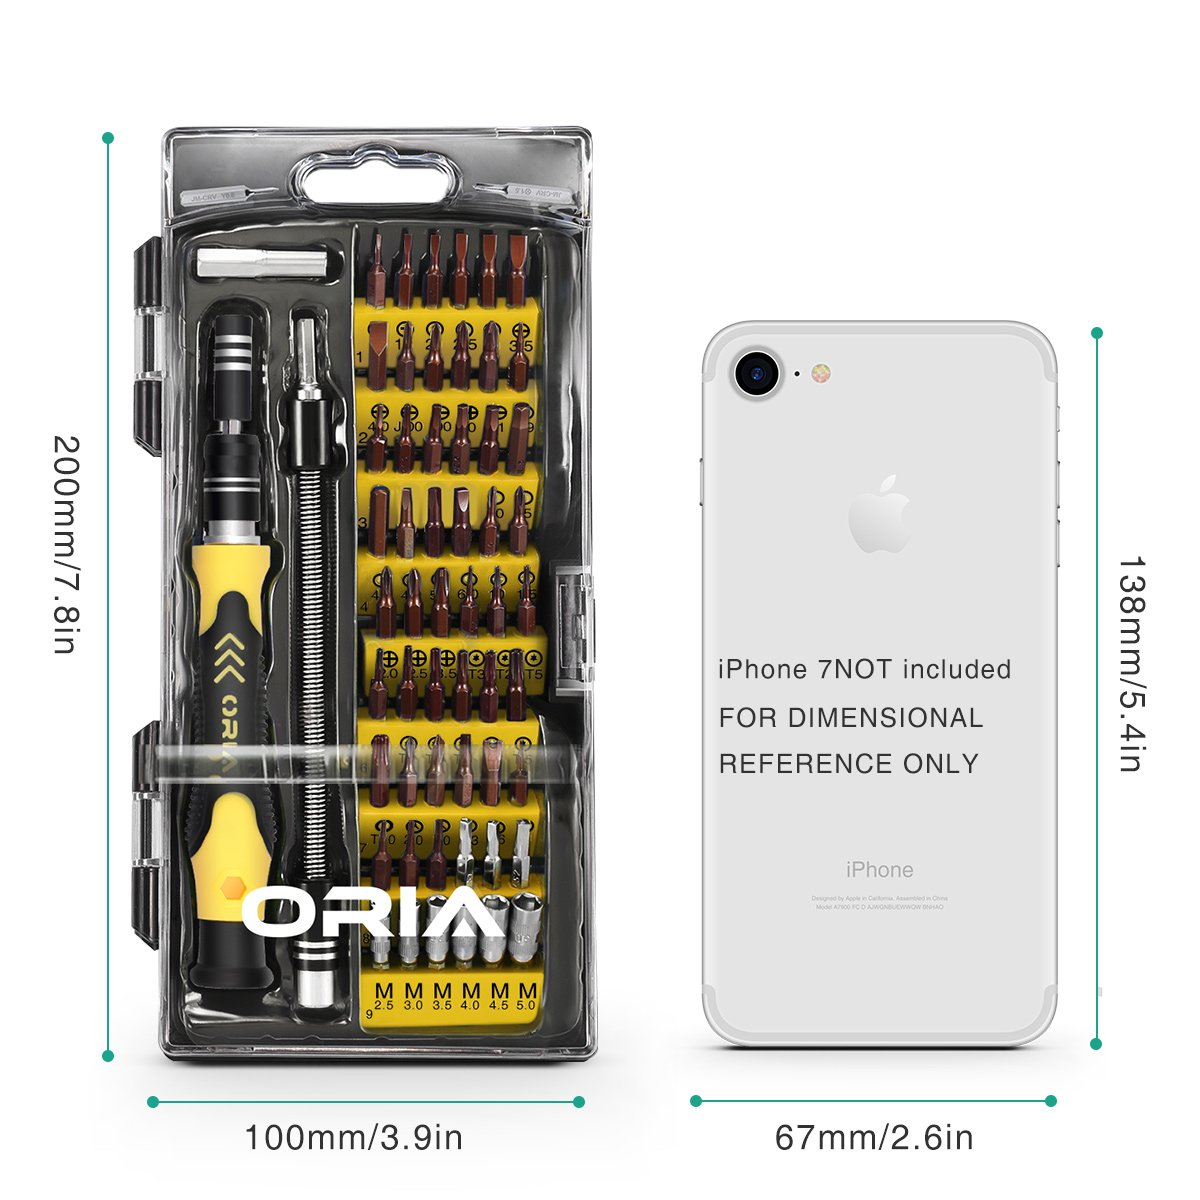 ORIA 64 in 1 Precision Screwdriver Set with 56 Bits, S2 Steel Magnetic Driver Kit, Professional Electronics Repair Tool Kit for Smartphone, Cell Phone, Computer, PS4, Tablet and Electronics Devices by ORIA (Image #8)